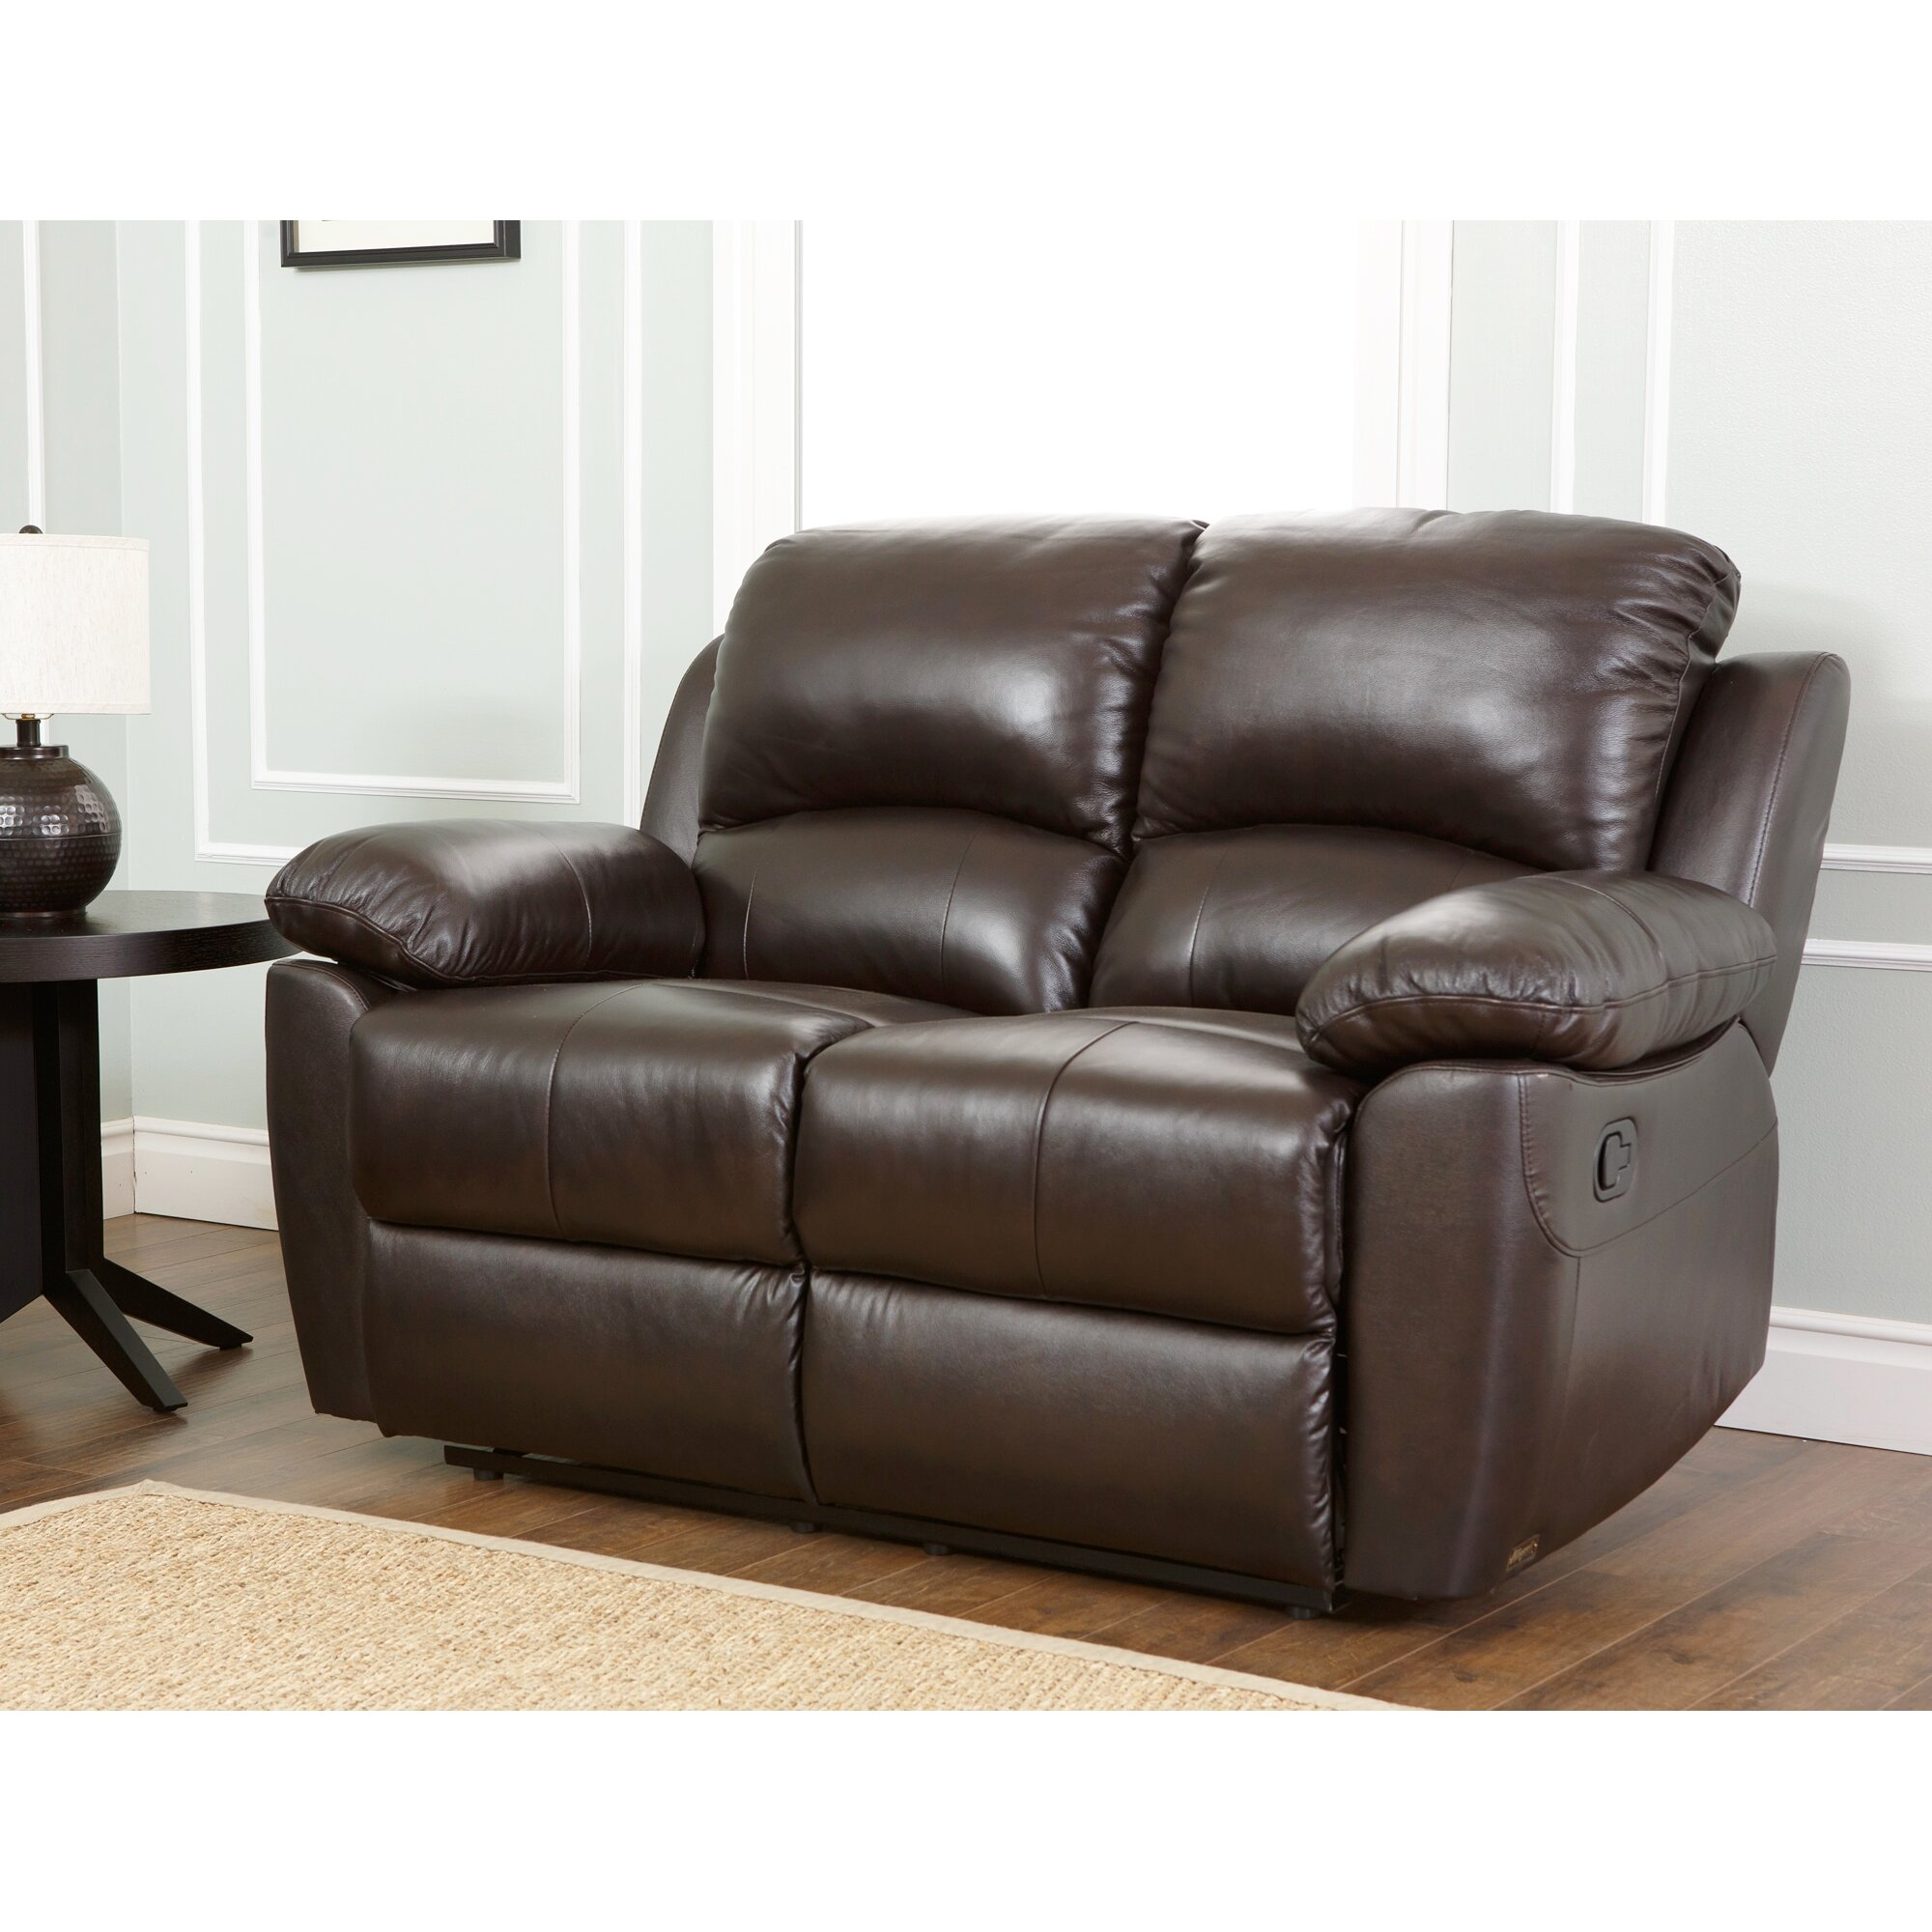 Abbyson Living Westwood Leather Reclining Loveseat Reviews Wayfair